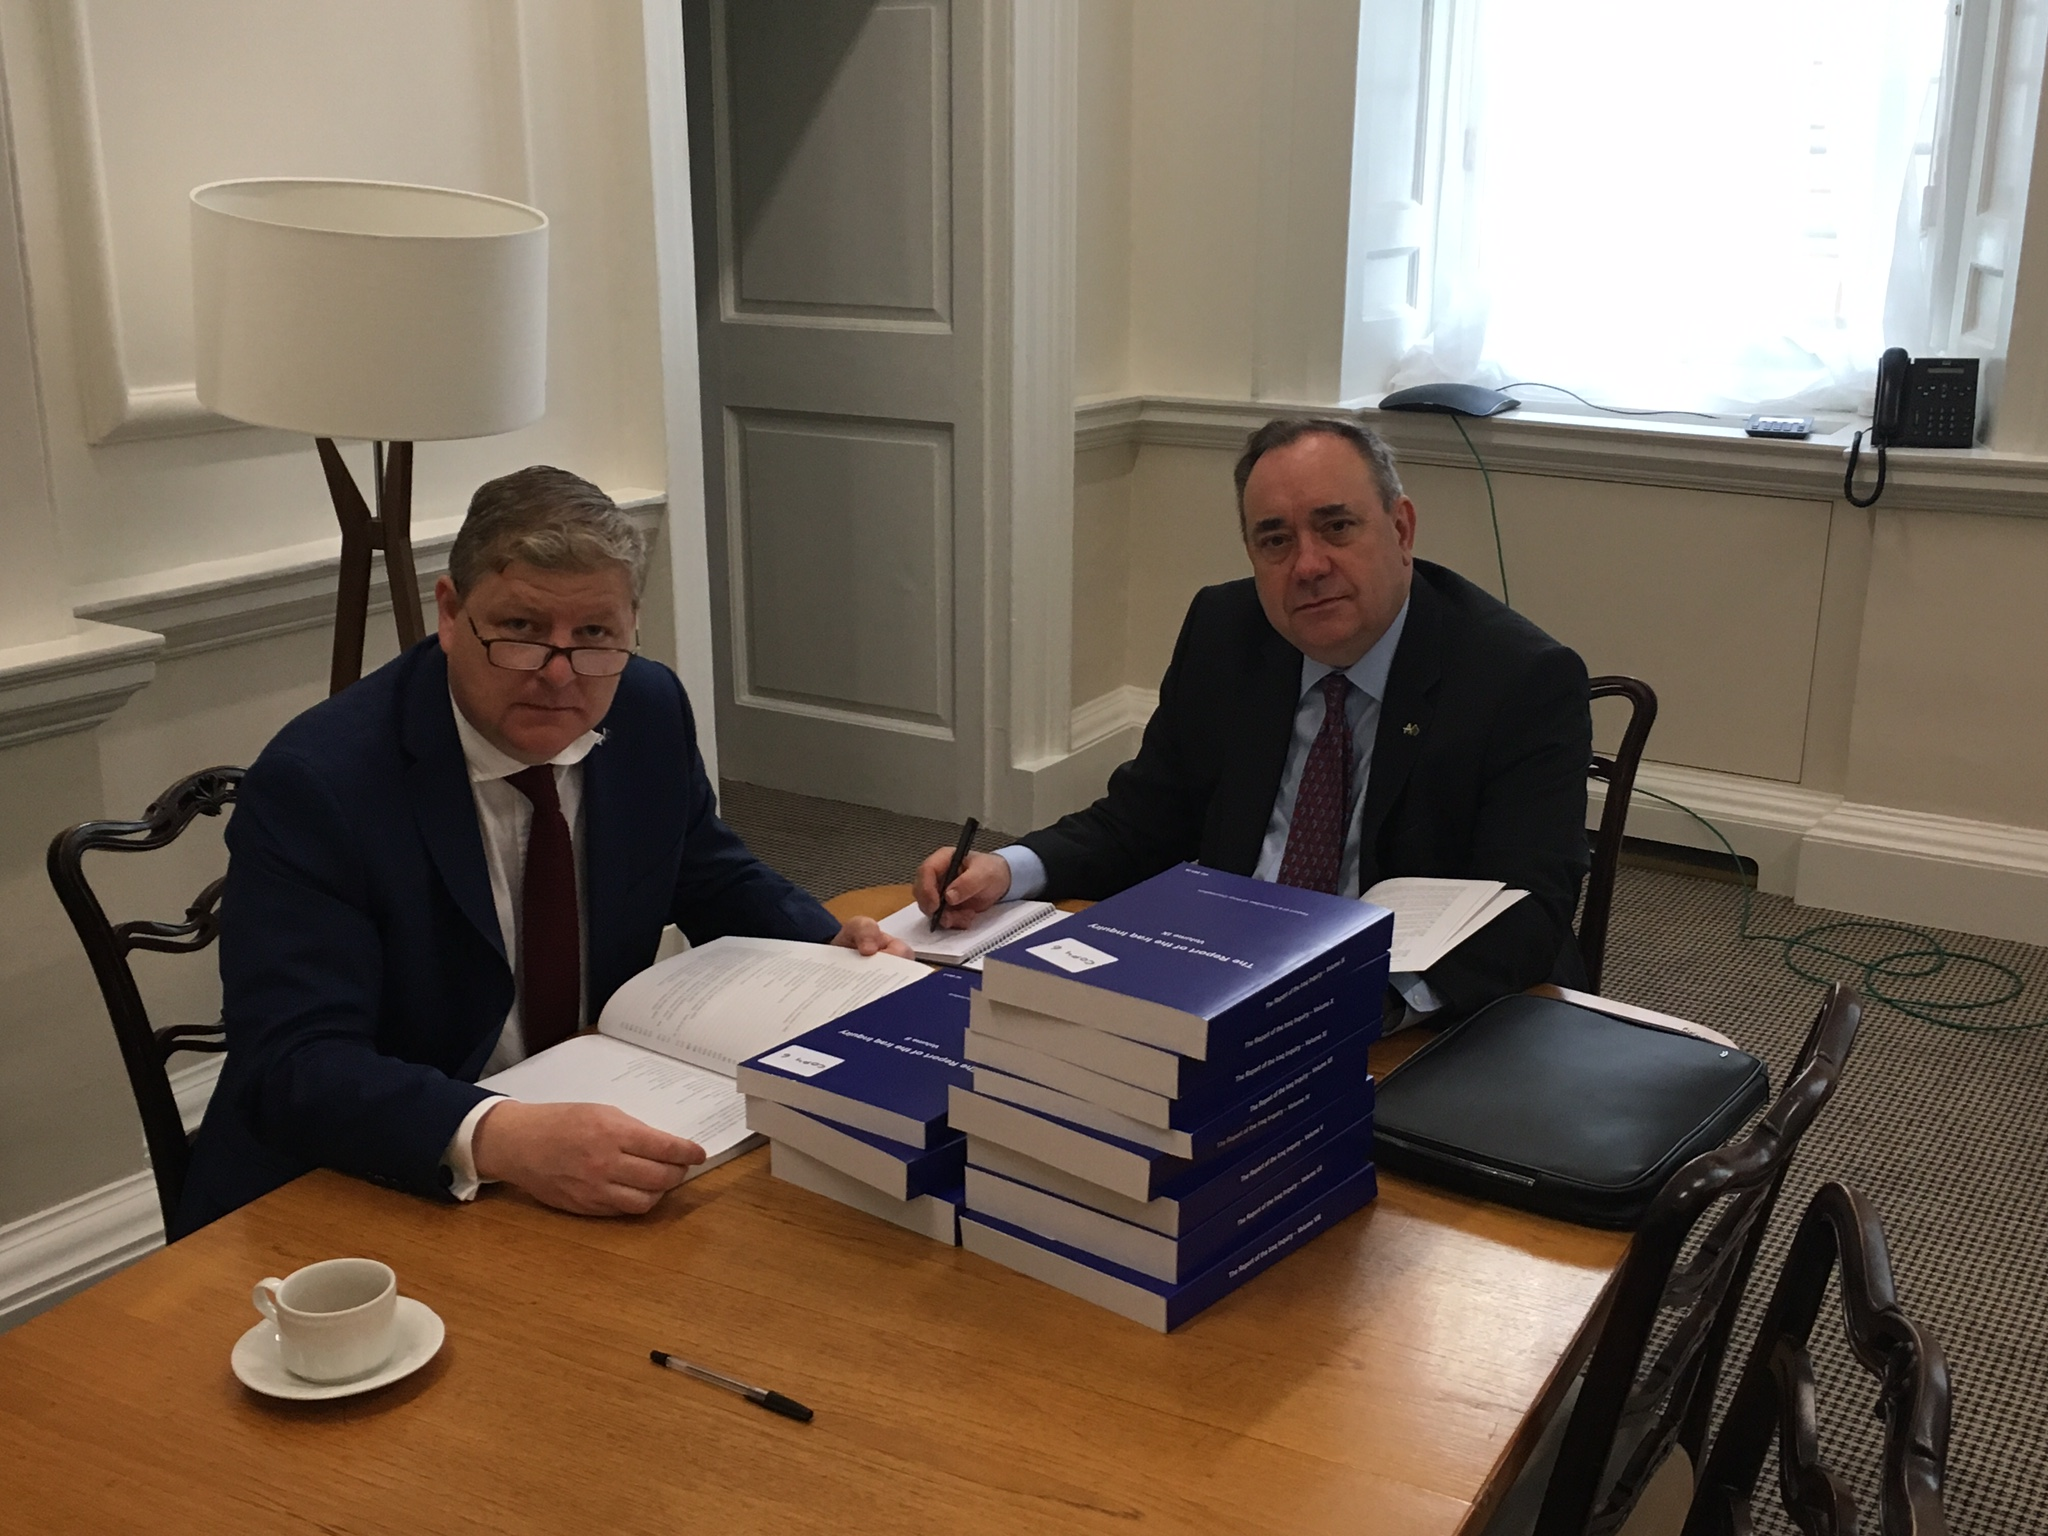 SNP Westminster Leader Angus Robertson MP and SNP Foreign Affairs spokesperson Alex Salmond MP viewing the Chilcot Report this morning.